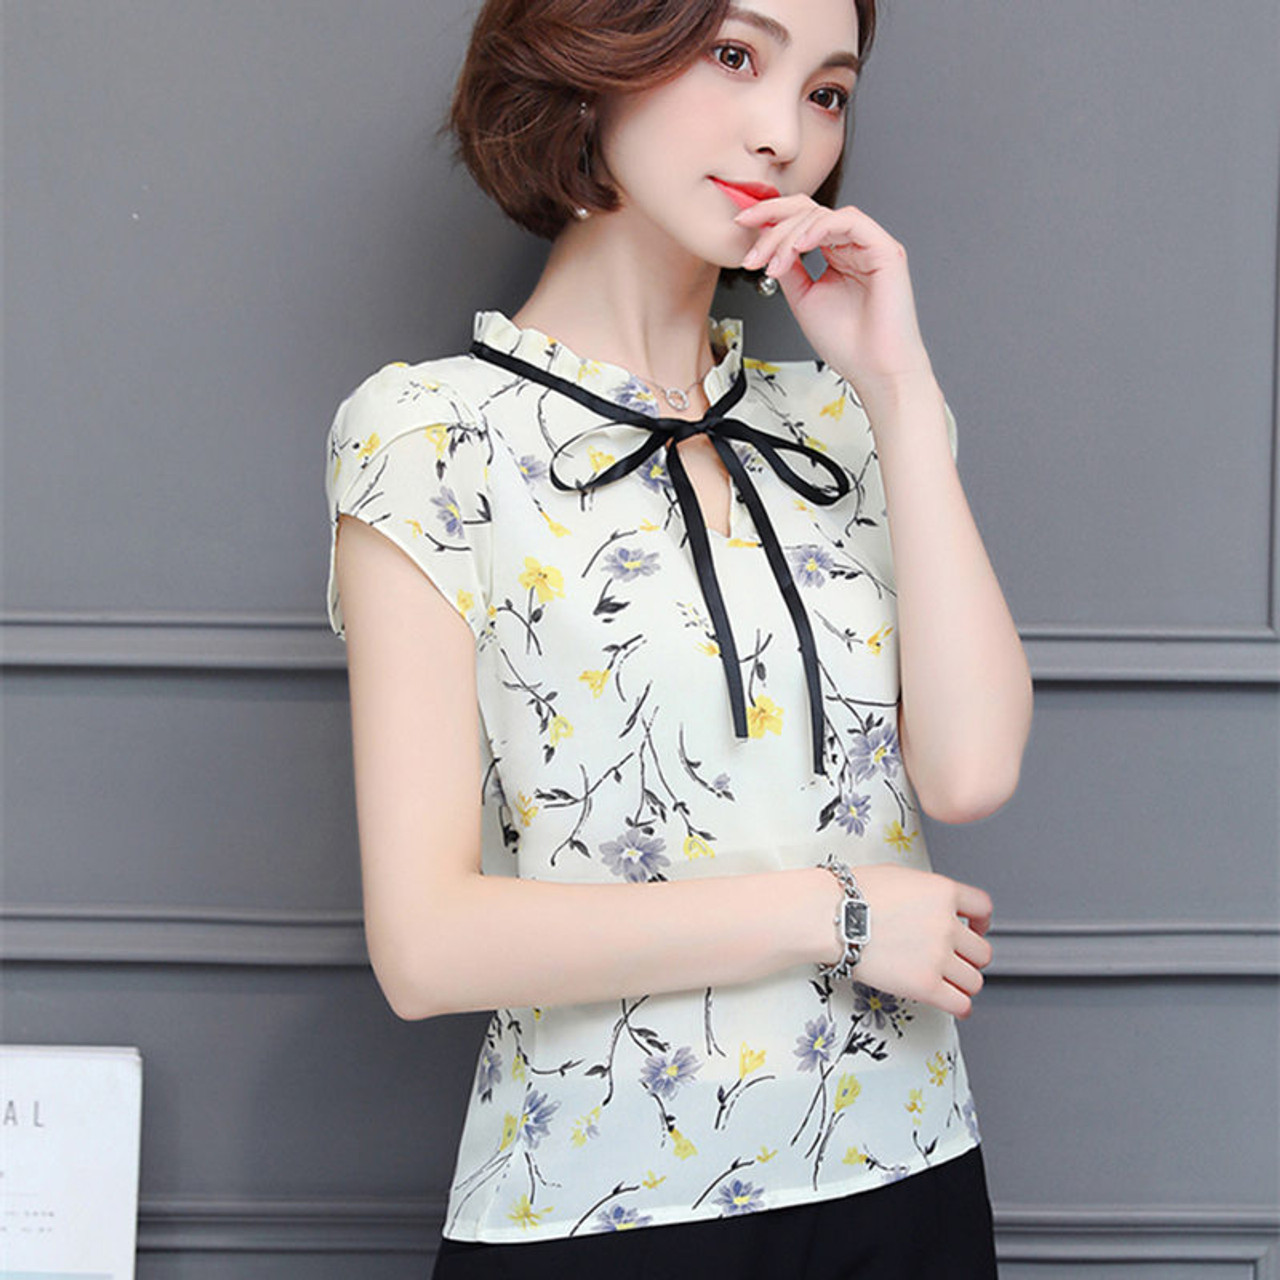 462ddabce5d398 ... New 2018 Floral Chiffon Blouses Women Summer Tops And Shirts Bow Sweet Blouse  Female Short Sleeve ...